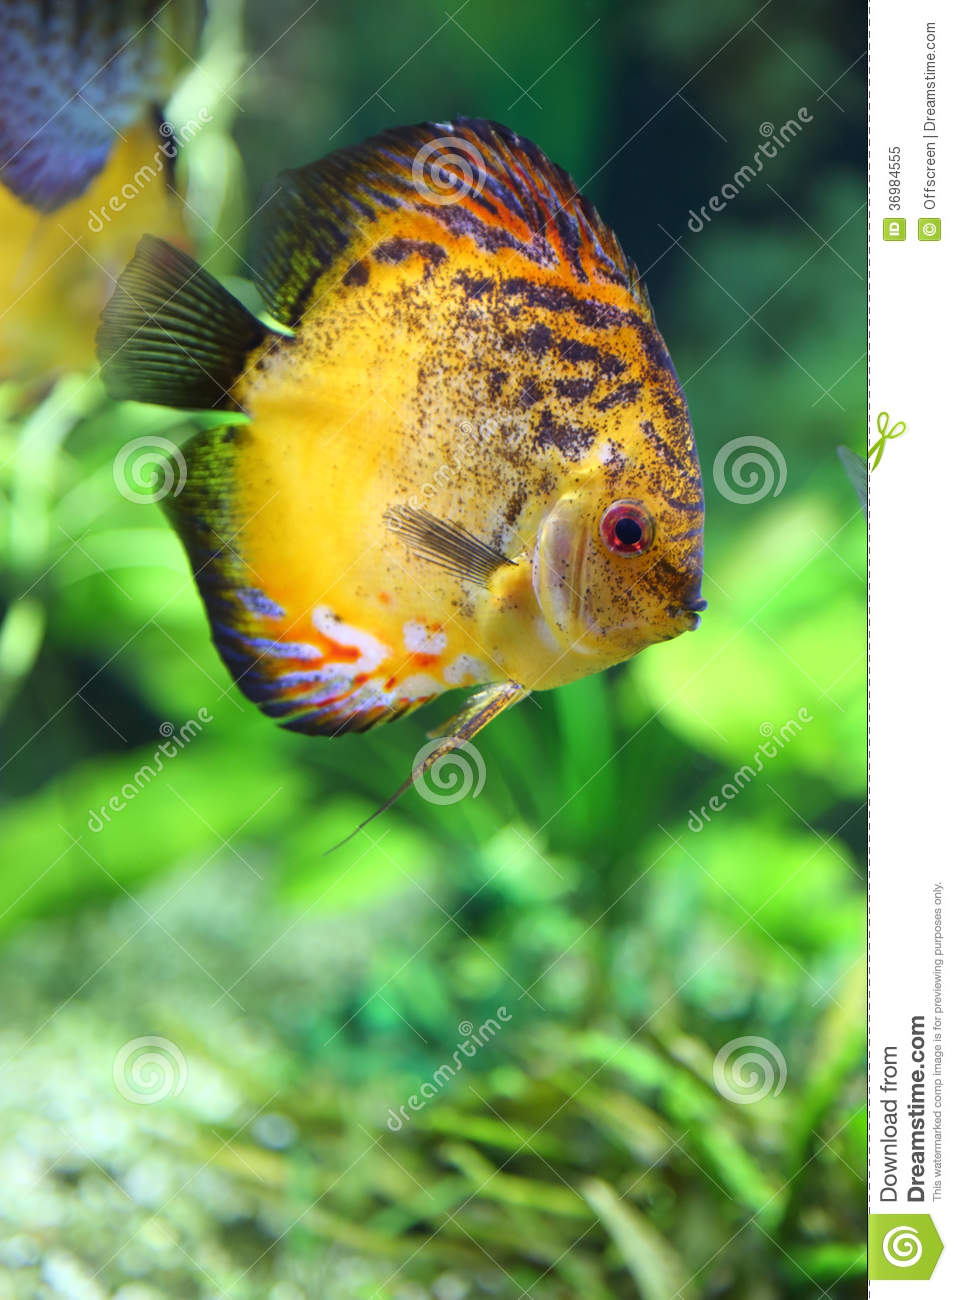 Diskus royalty free stock photo image 36984555 for Diskus aquarium